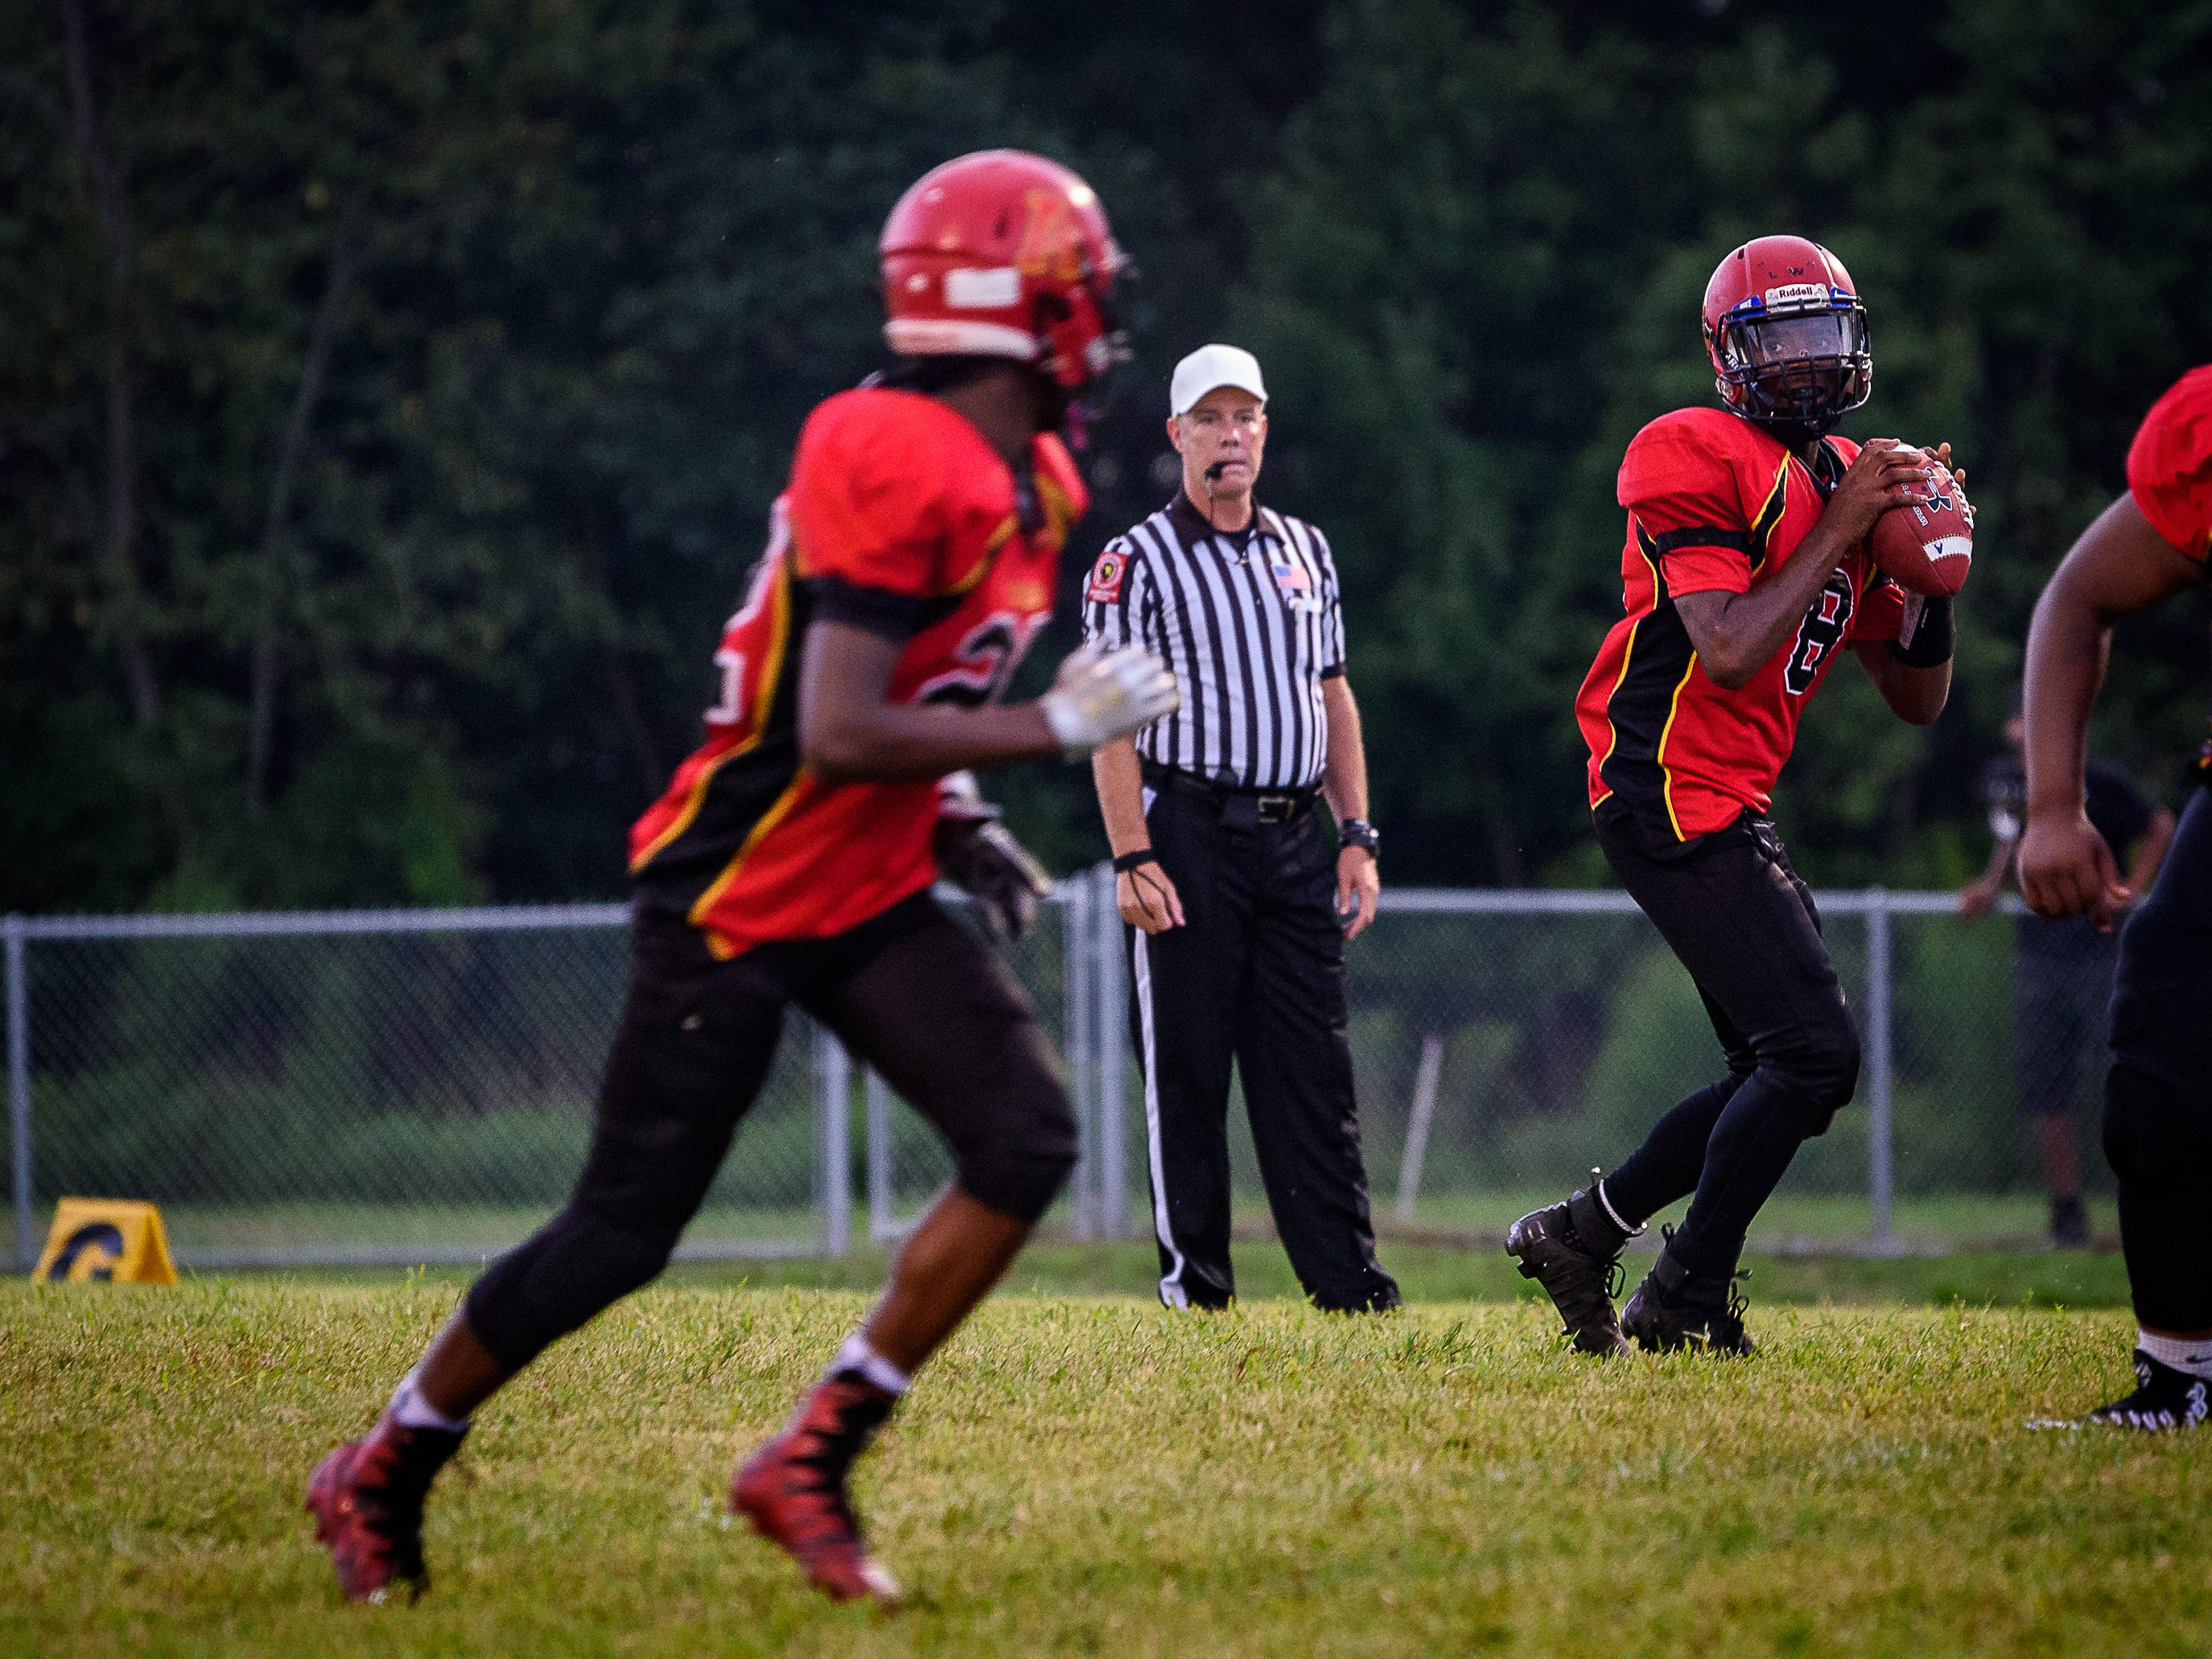 Arcadia's Lethon Williams, No. 8, prepares to pass to   Jaden Hope during the game against Stephen Decatur at home.